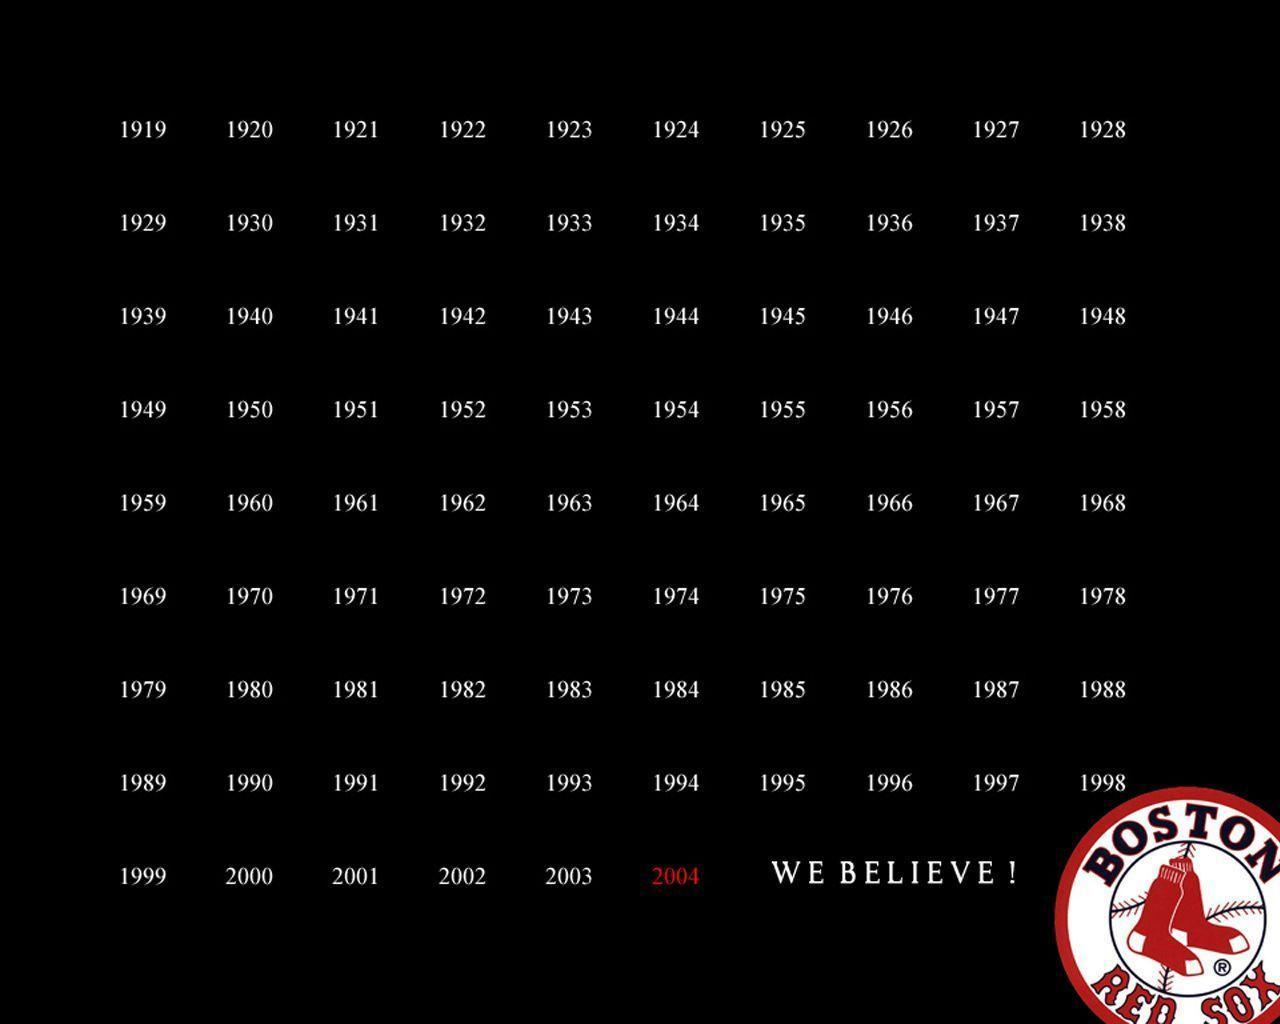 Outstanding Boston Red Sox wallpapers